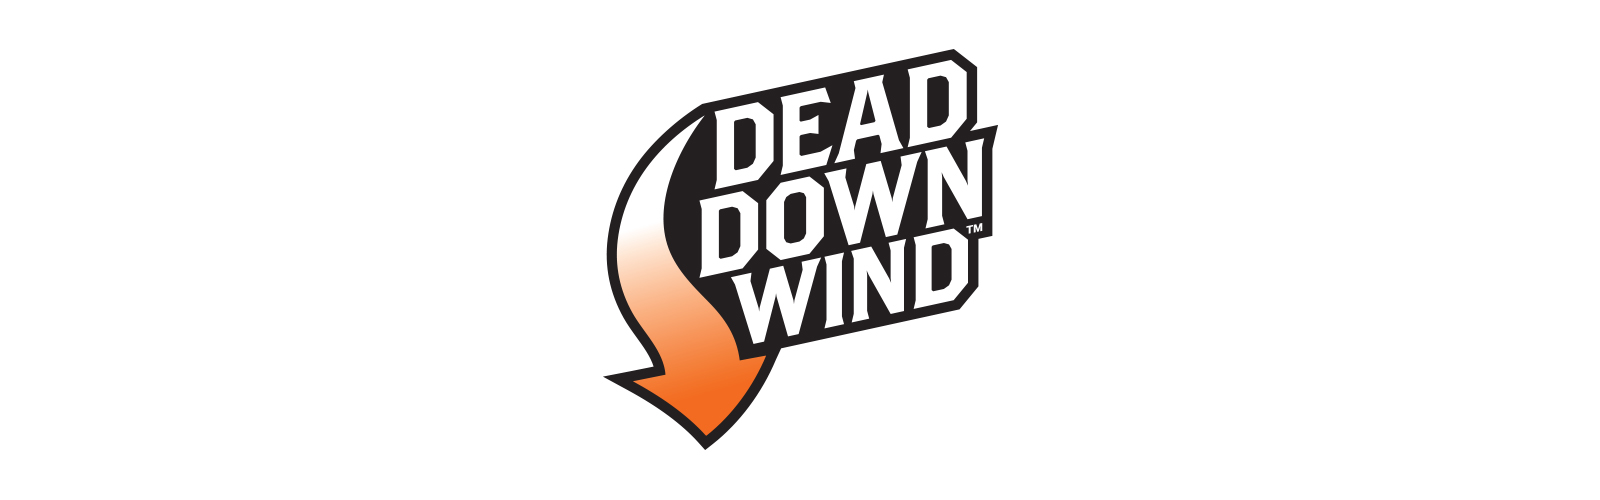 Natural Woods, Field Dressing Kit and More From Dead Down Wind in 2017